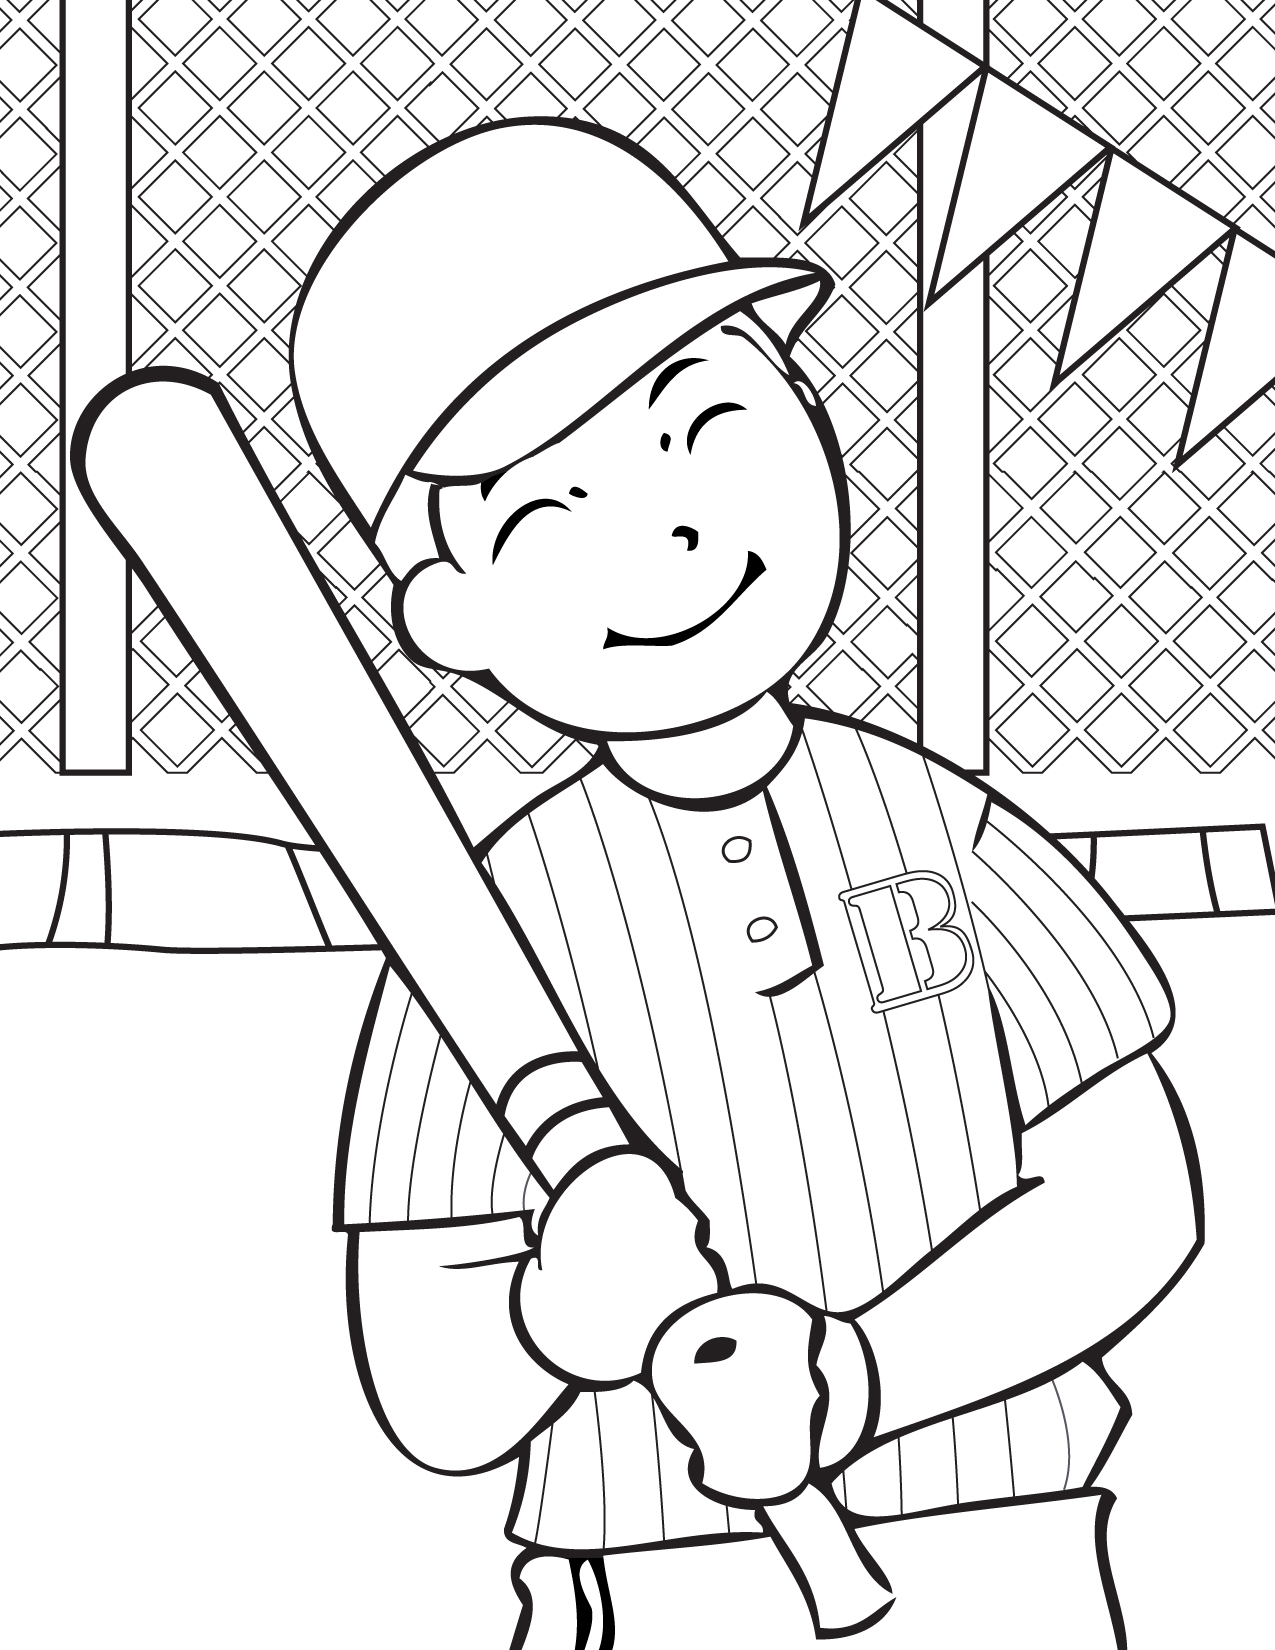 coloring pages sport coloring pages for kids sports coloring page